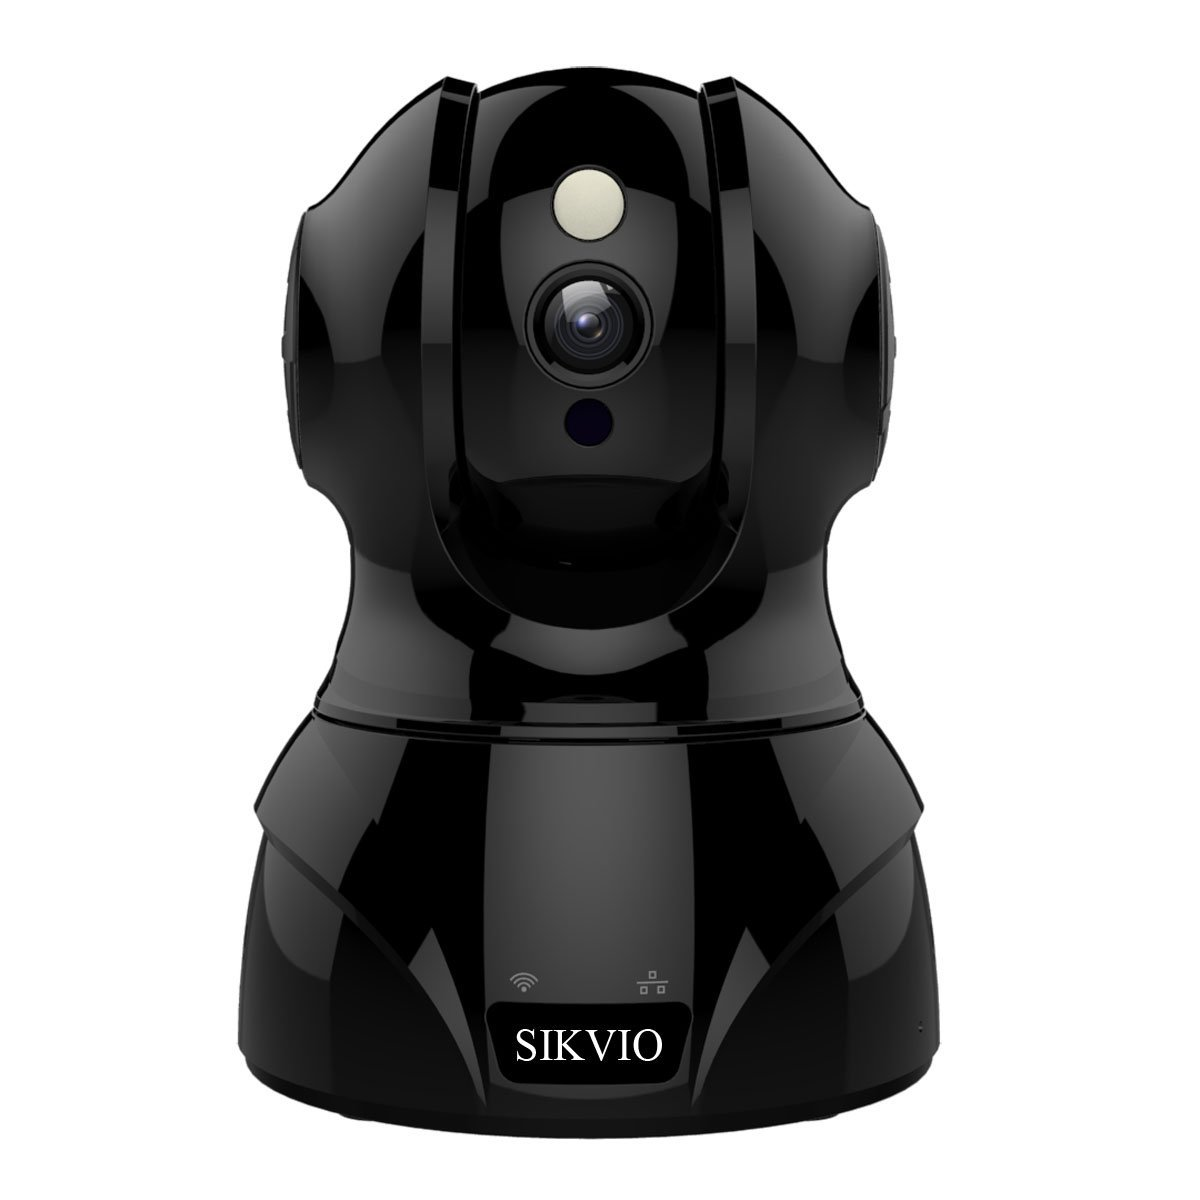 SIKVIO WiFi Home Security Surveillance IP Camera HD 1536P&1080P with Sound & Motion Detection Motion Tracker Two-Way Audio Night Vision Work with Alexa - Free Cloud, Black by SIKVIO